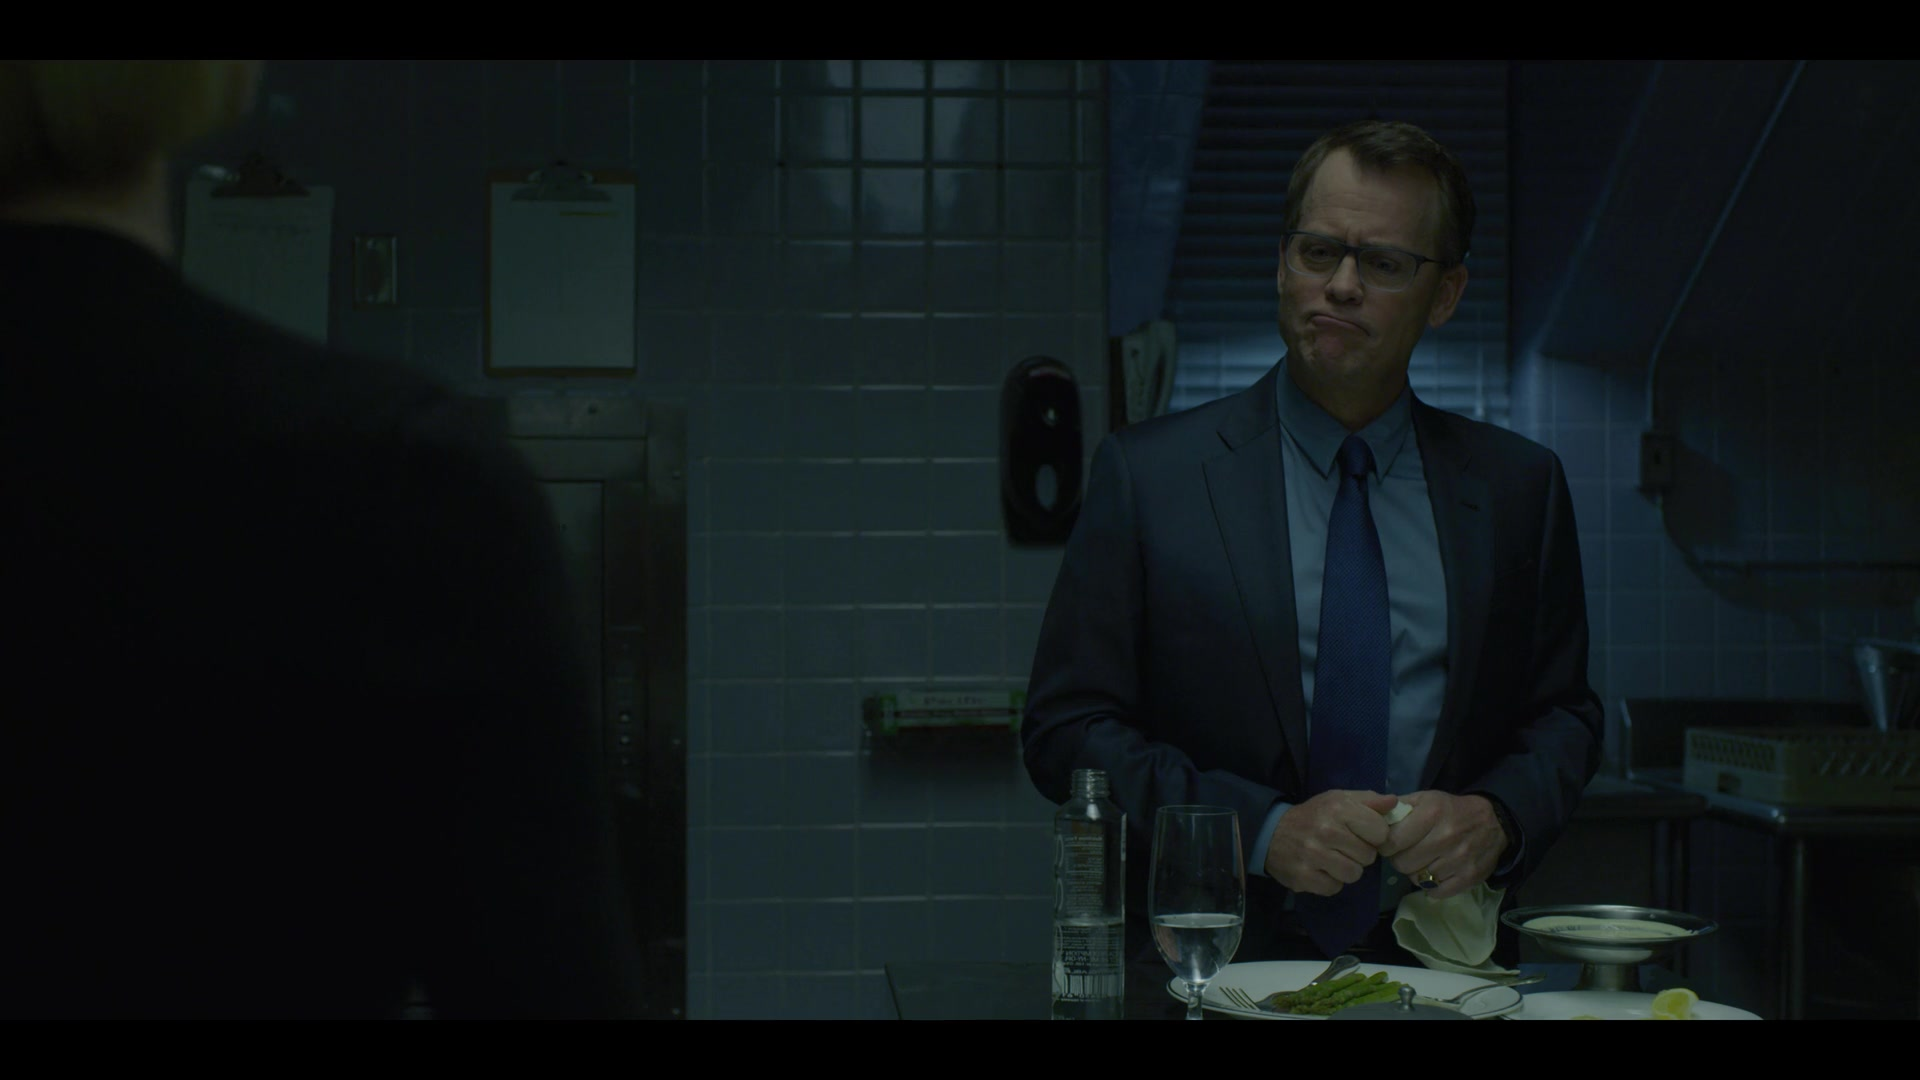 Voss Water Bottle In House Of Cards Season 6 Episode 2 Chapter 67